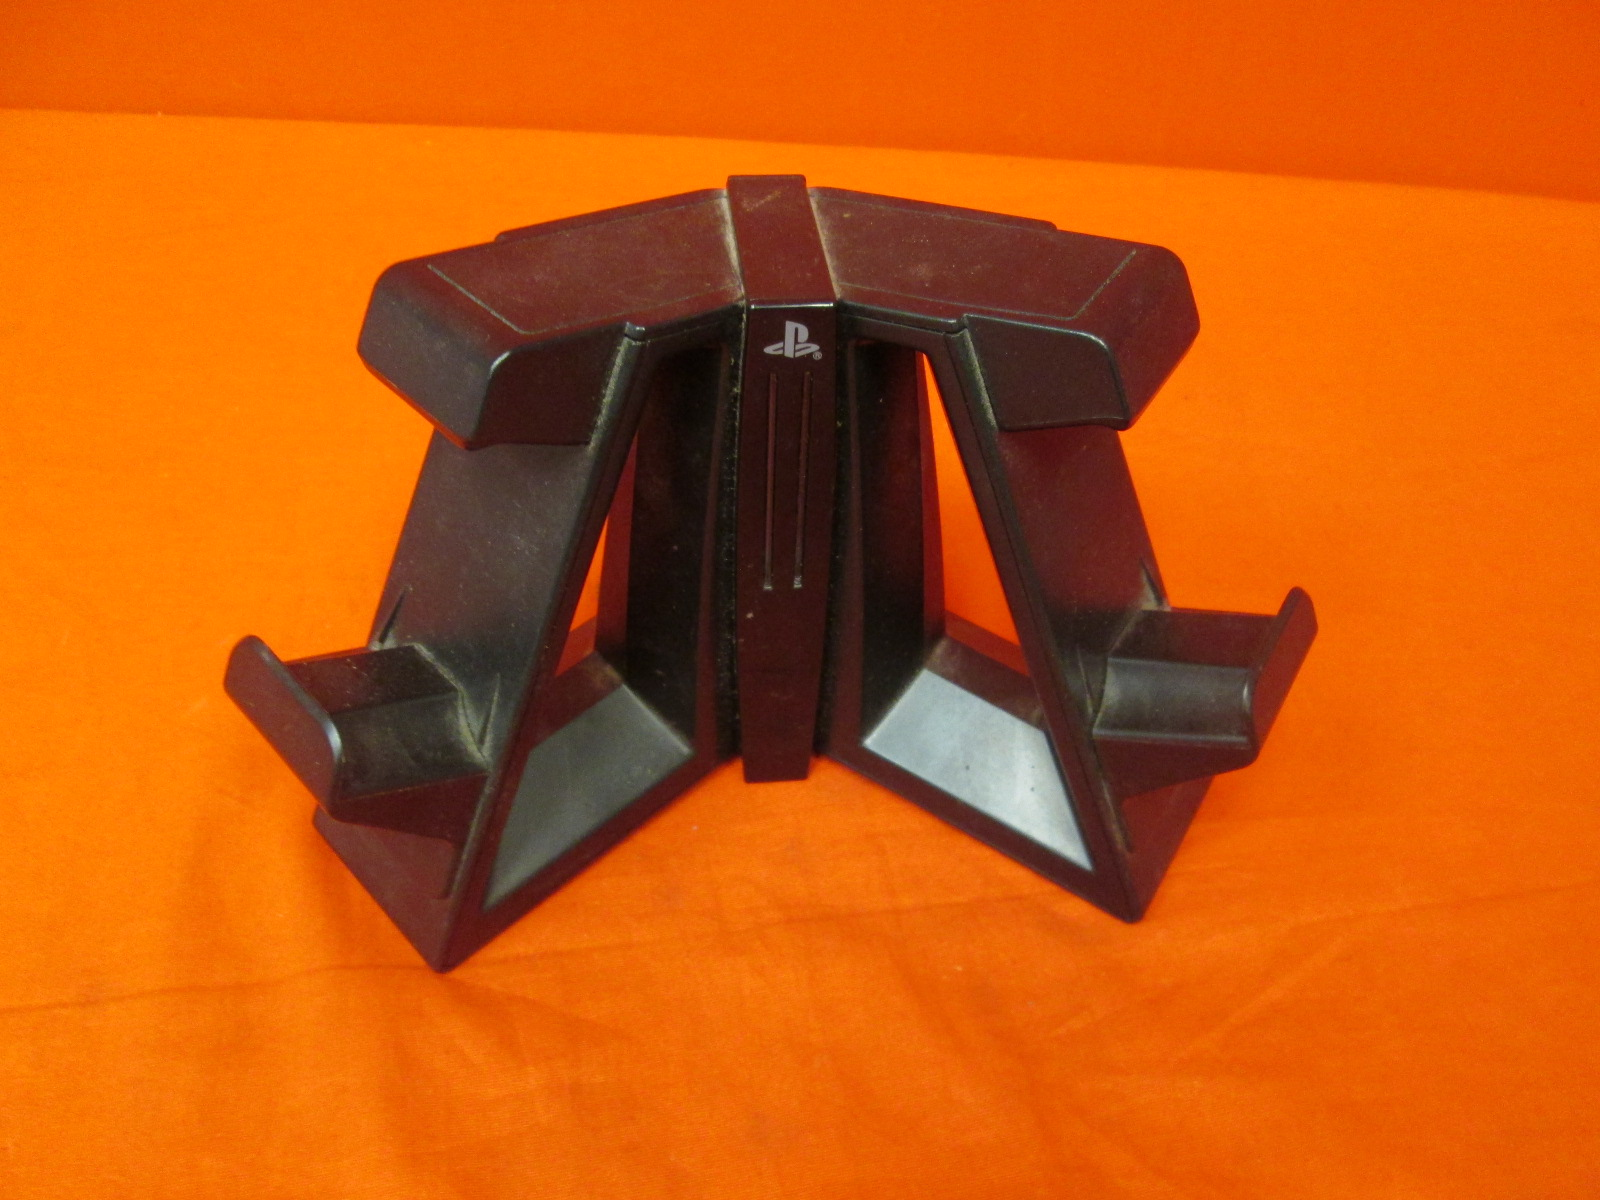 Power Stand Charger For PS3 For PlayStation 3 Incomplete